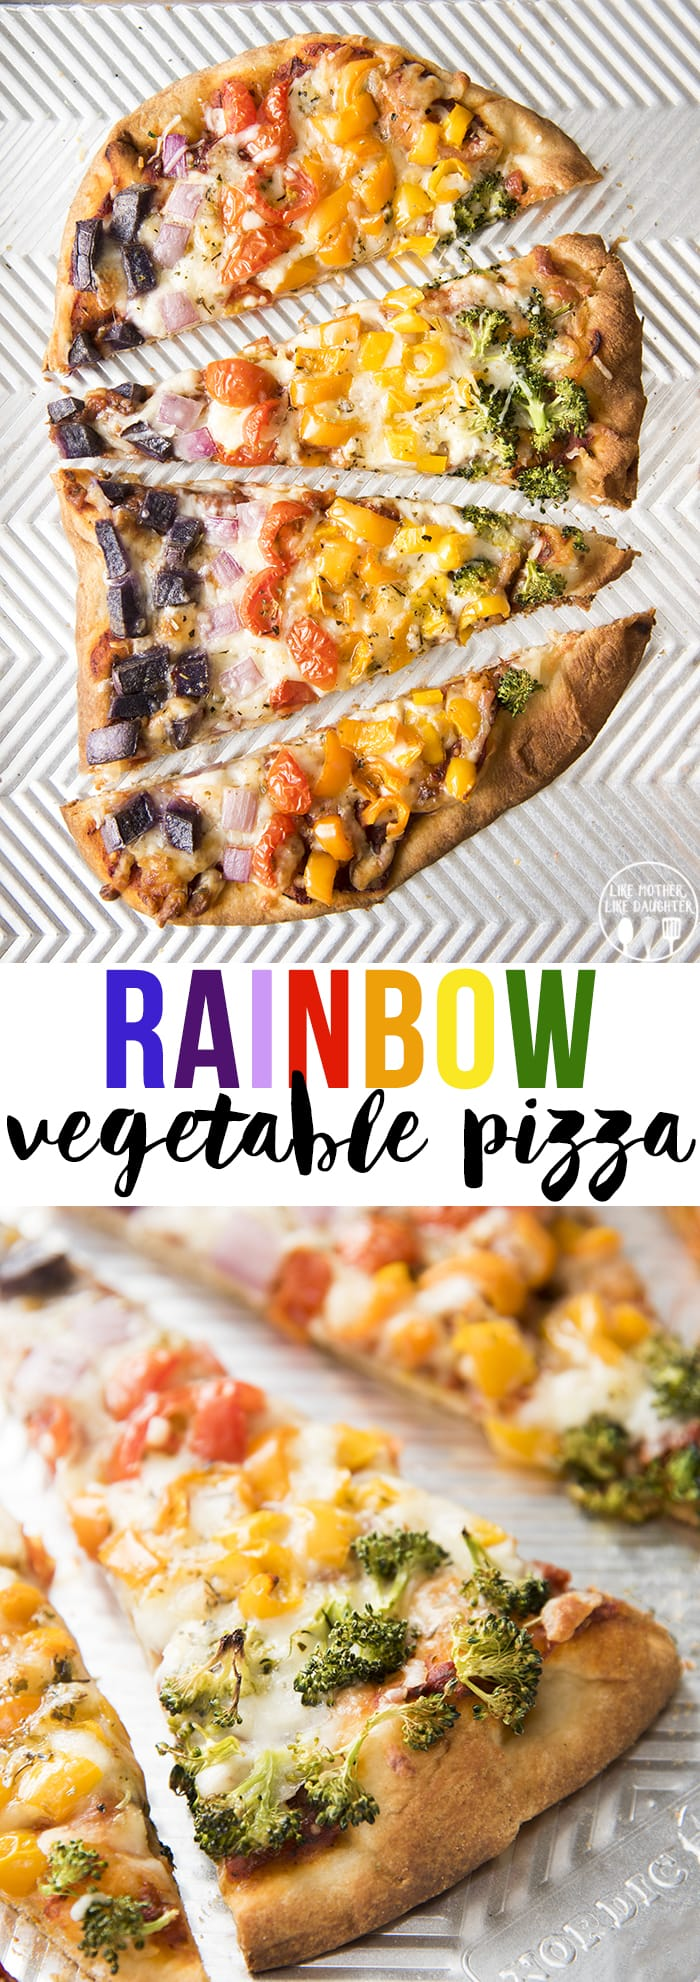 This Rainbow Veggie pizza is a delicious vegetarian pizza with the colors of the rainbow!